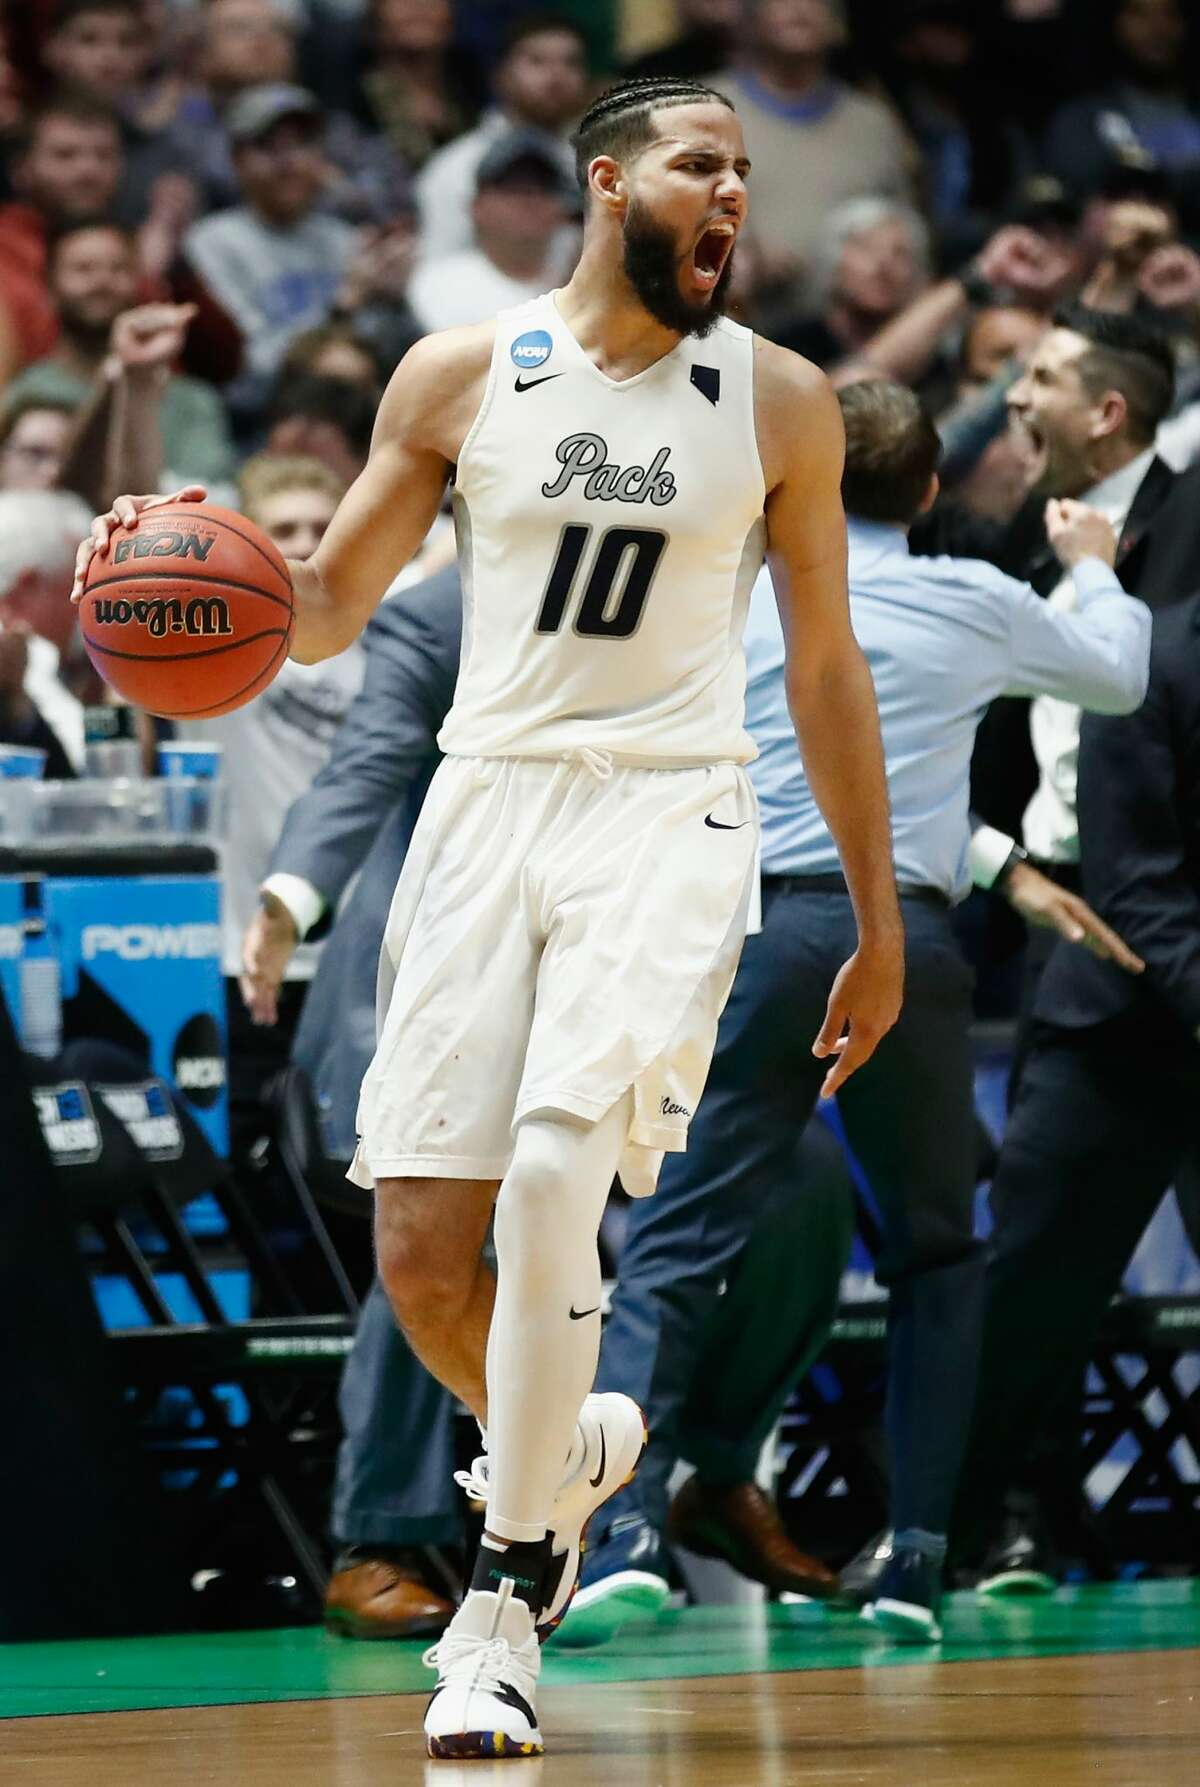 NASHVILLE, TN - MARCH 16: Caleb Martin #10 of the Nevada Wolf Pack celebrates as they defeat the Texas Longhorns during the game in the first round of the 2018 NCAA Men's Basketball Tournament at Bridgestone Arena on March 16, 2018 in Nashville, Tennessee. (Photo by Andy Lyons/Getty Images)